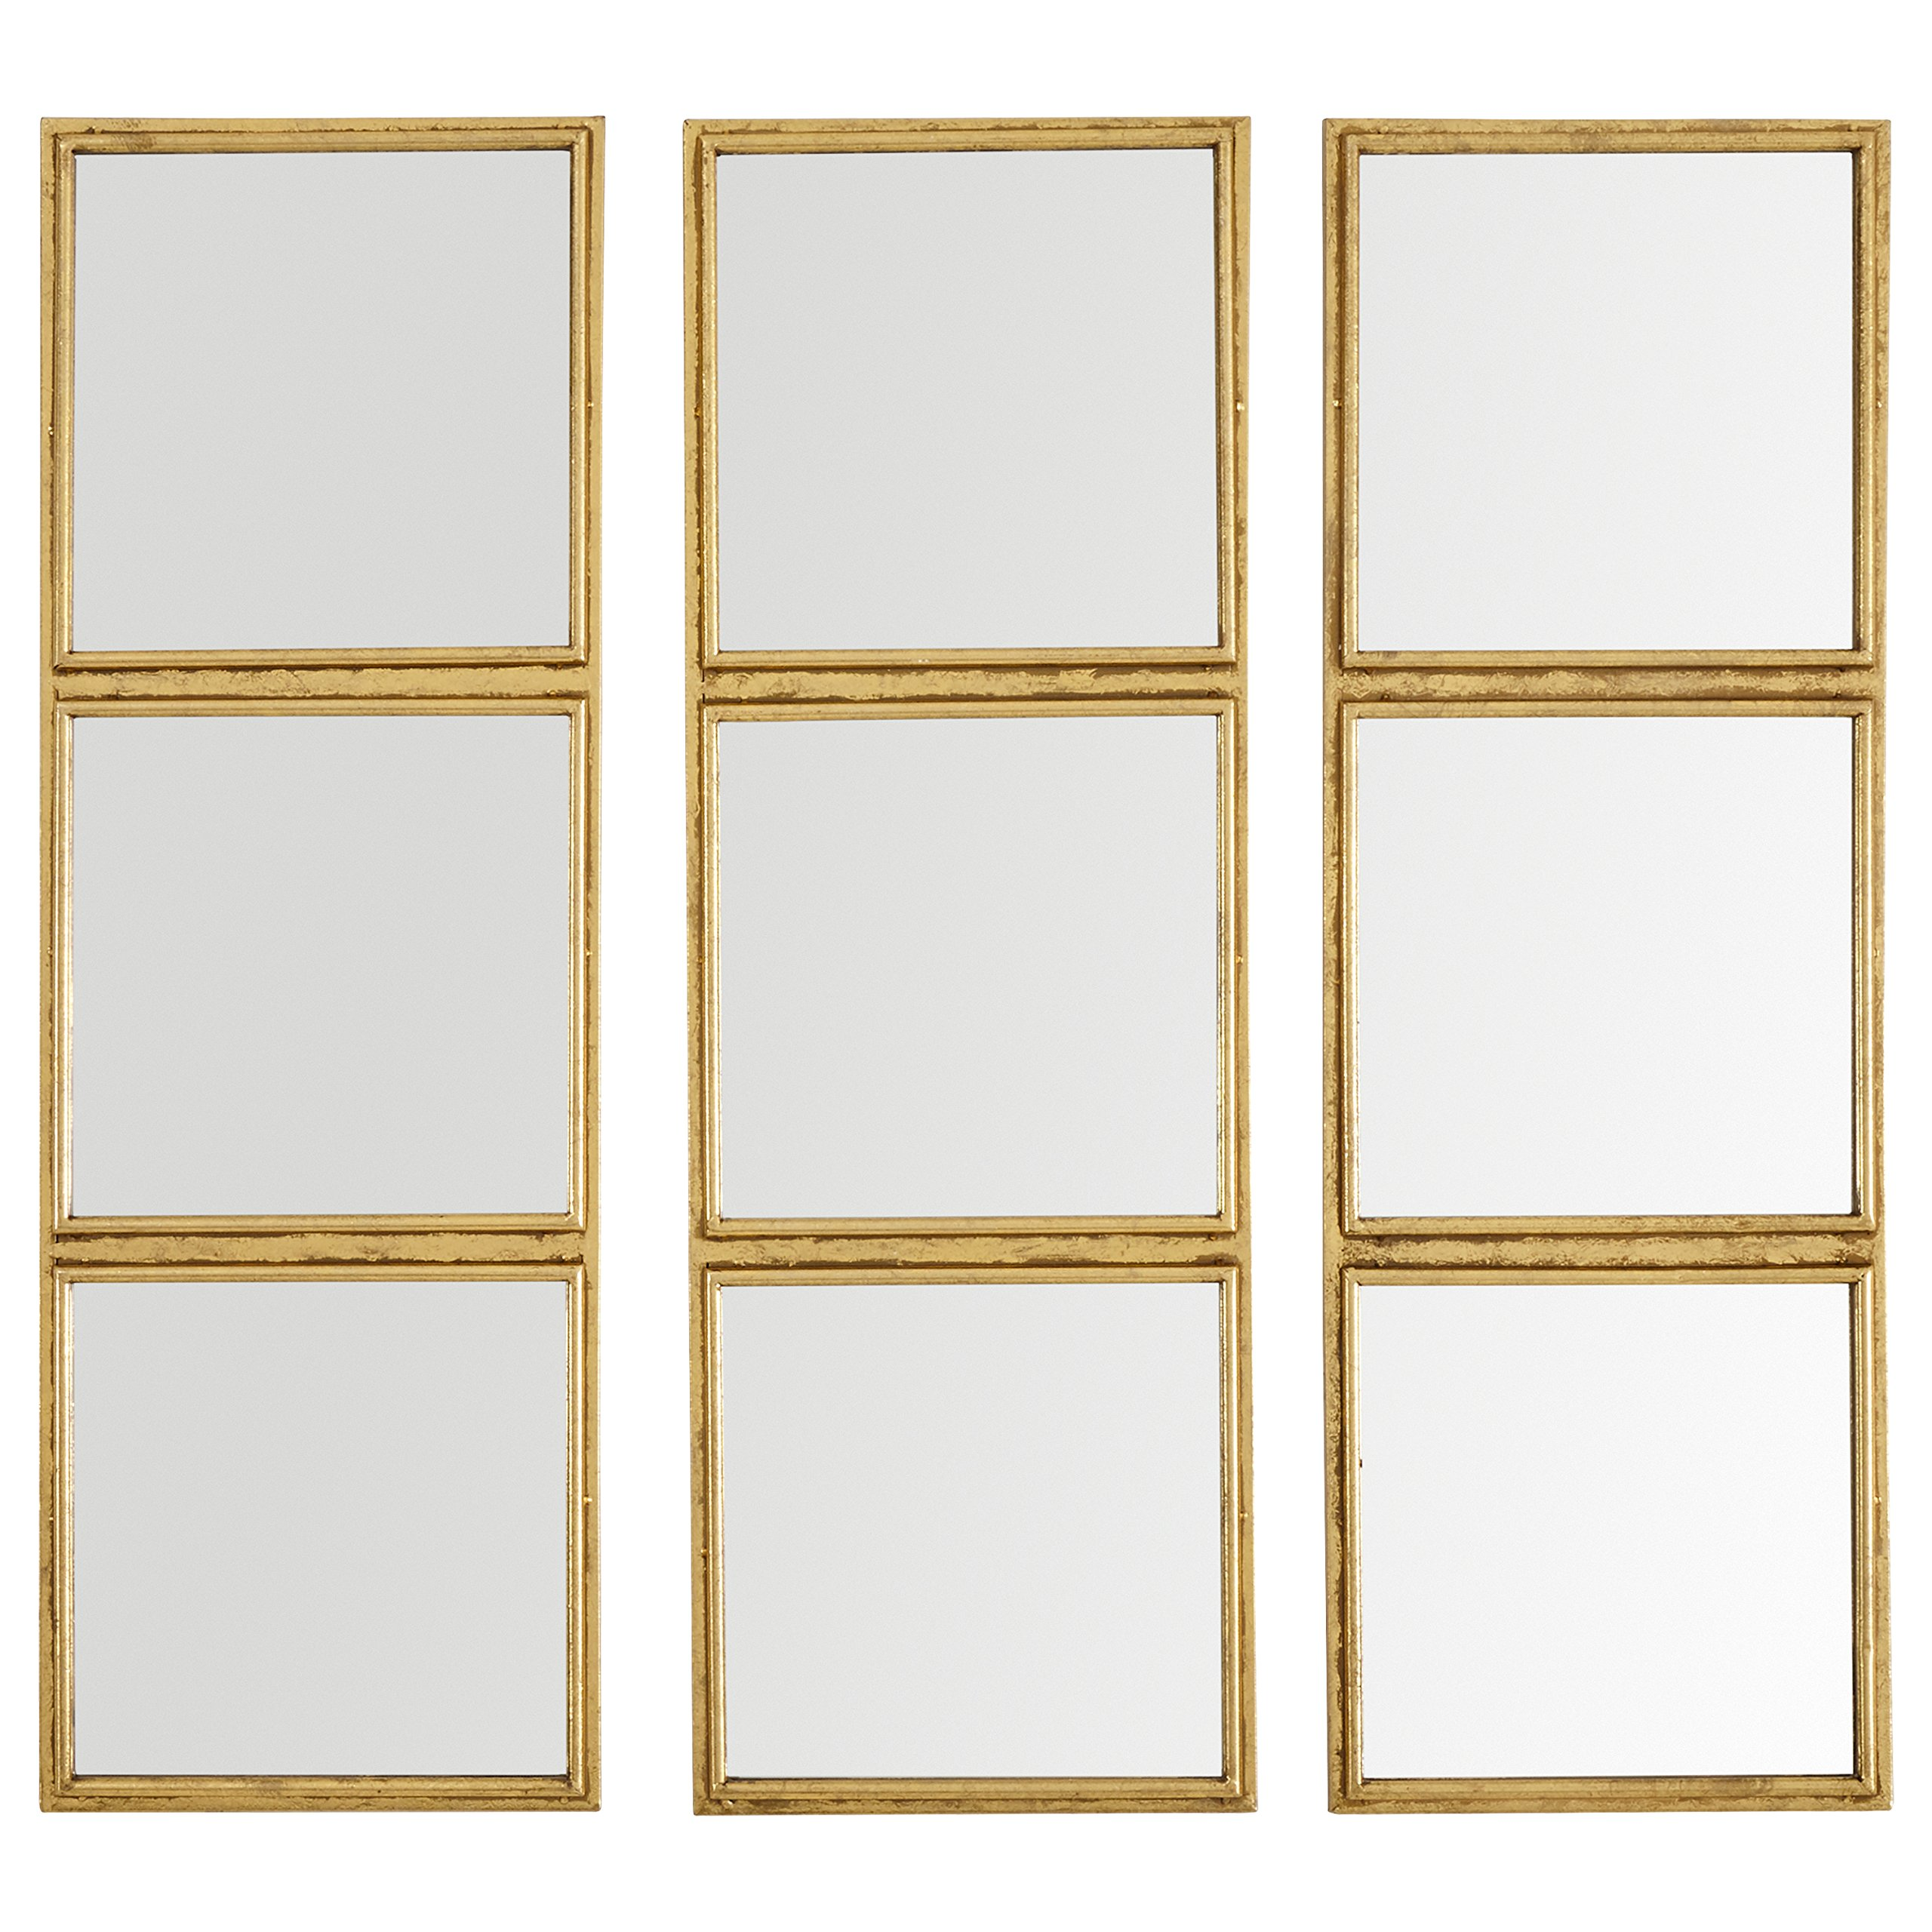 Rivet 3x3 Tile Mirror, 36'' H, Gold Finish